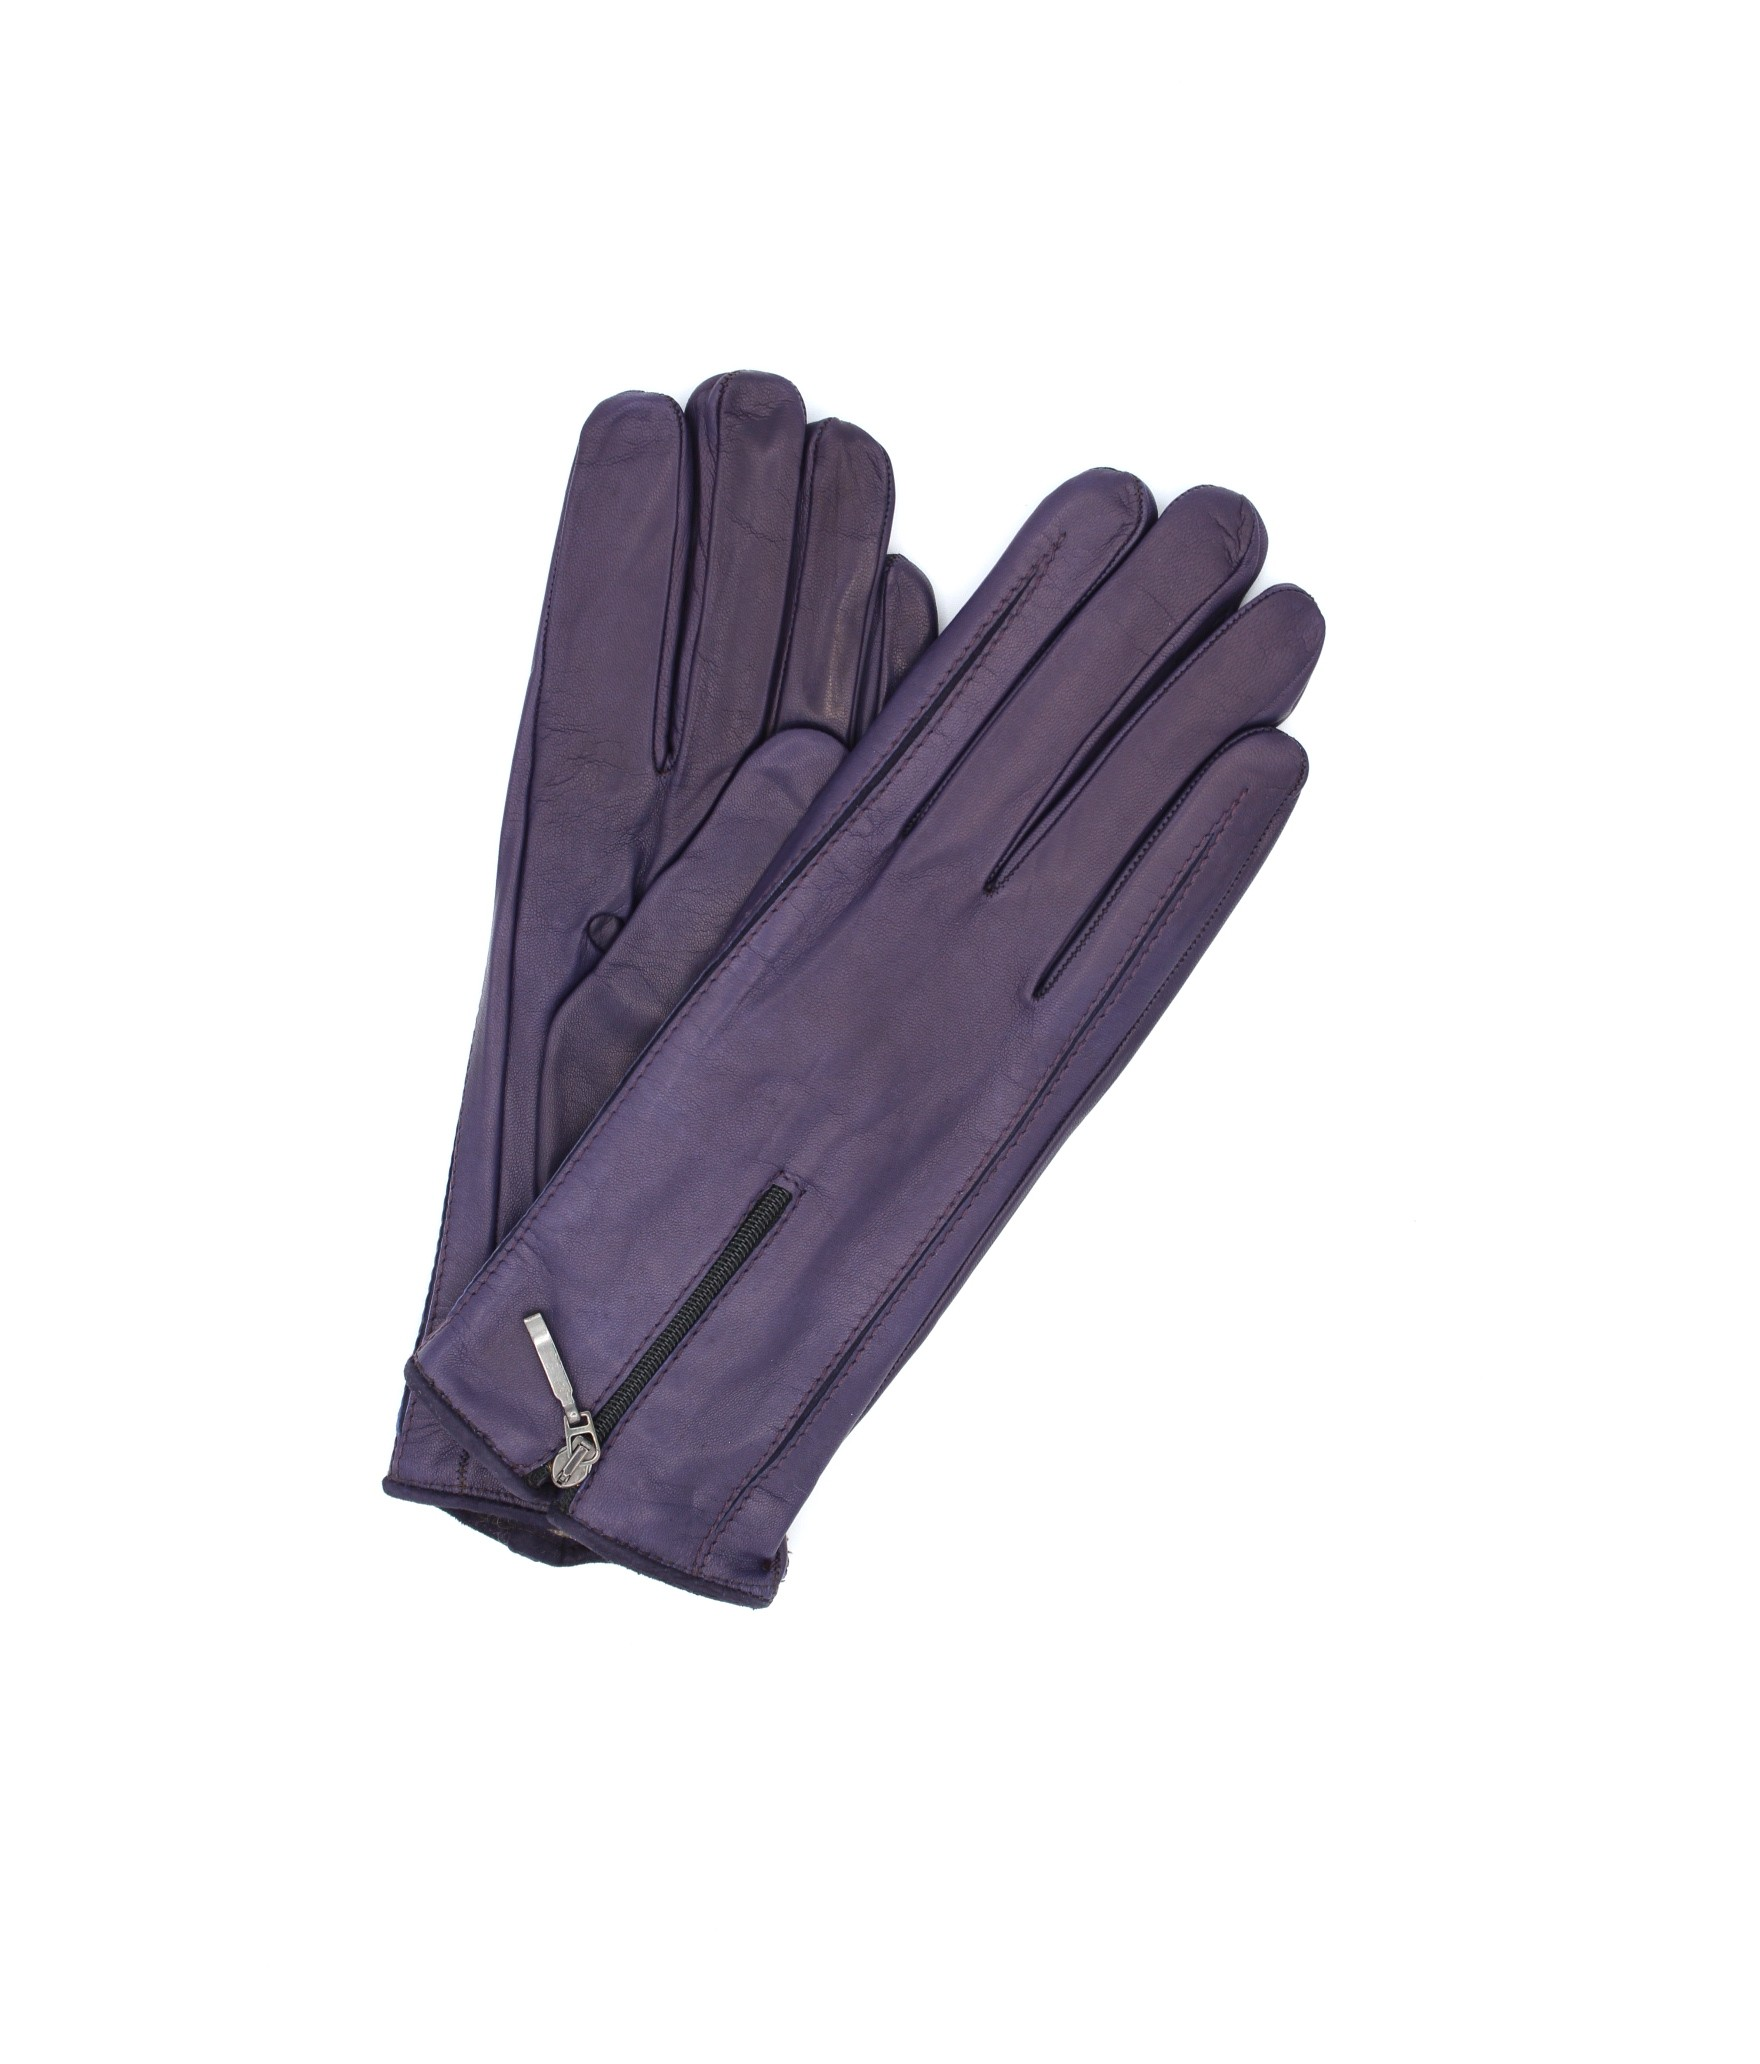 Nappa leather gloves cashmere lined with Zip Purple Sermoneta